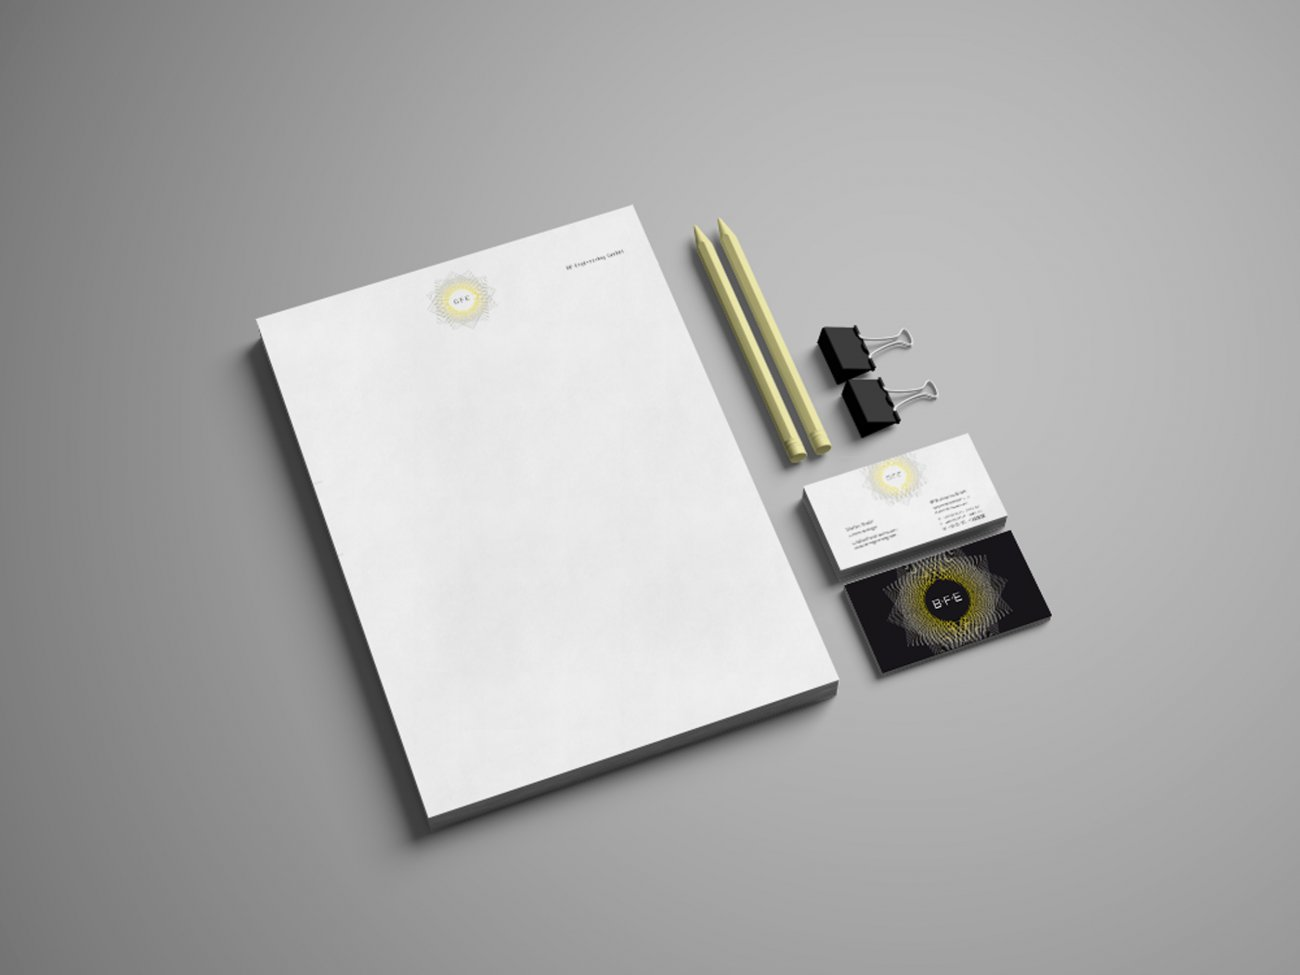 bfe stationery 3